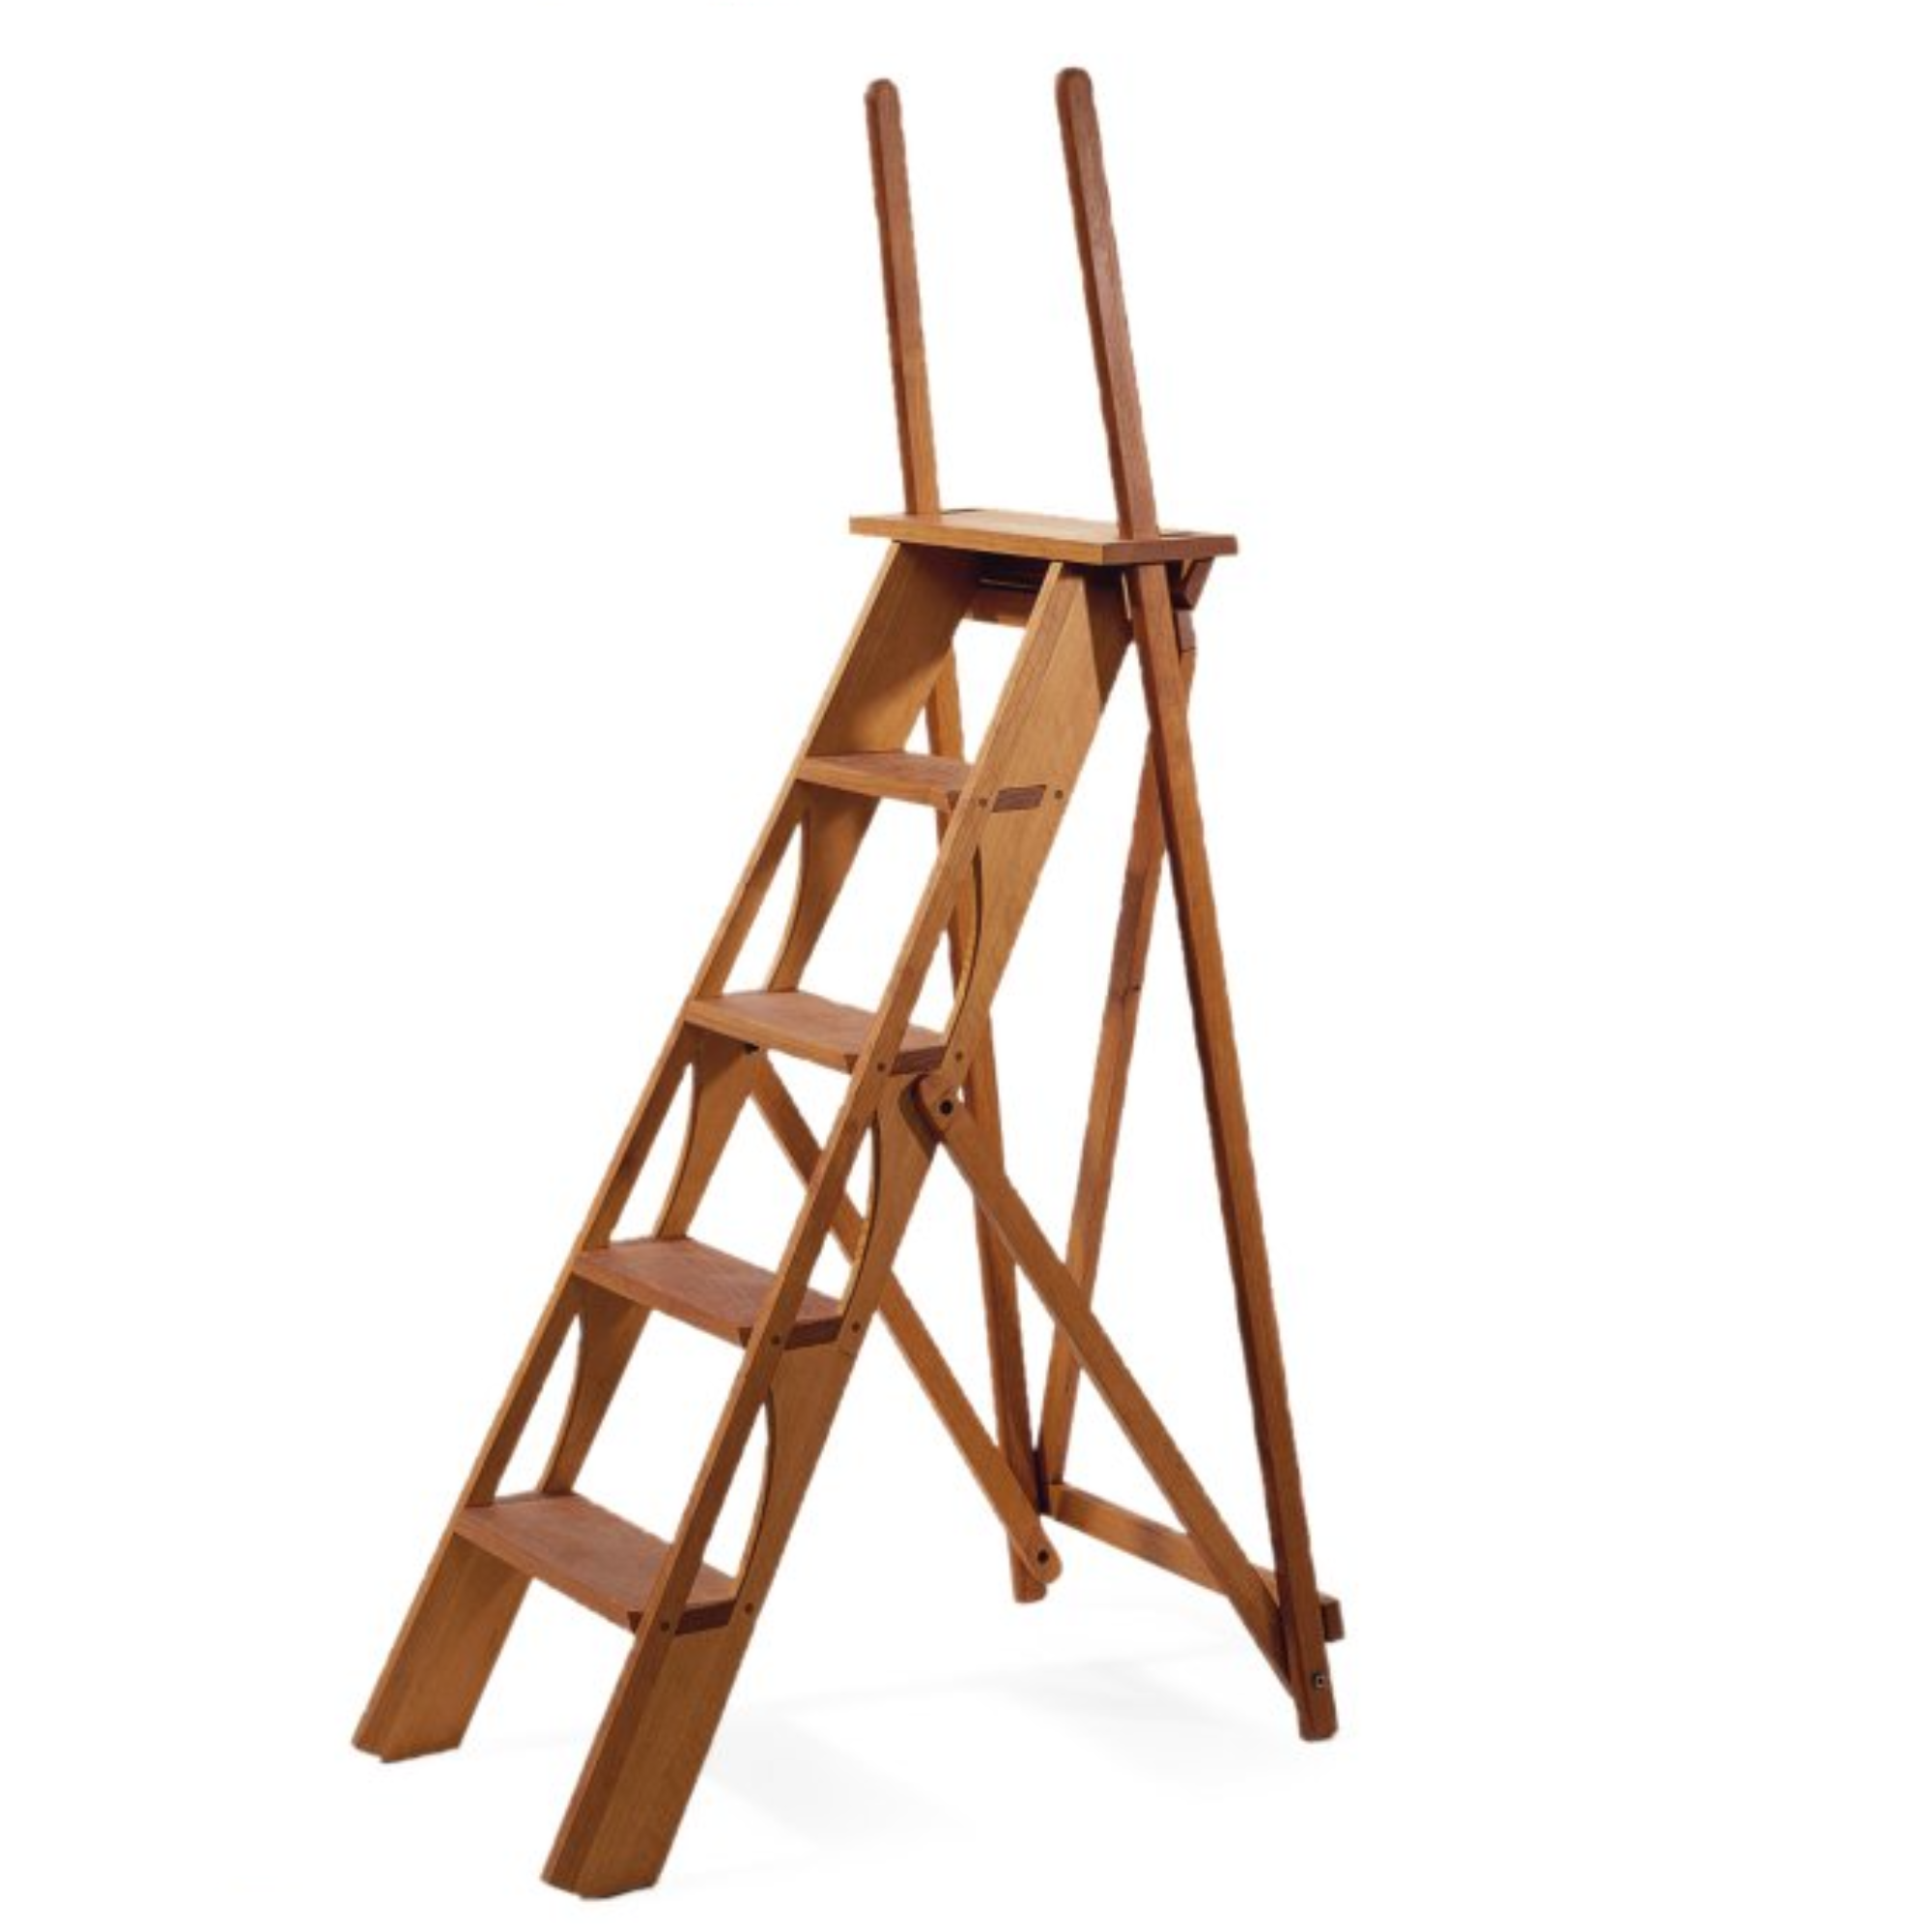 Ladder in cherry wood